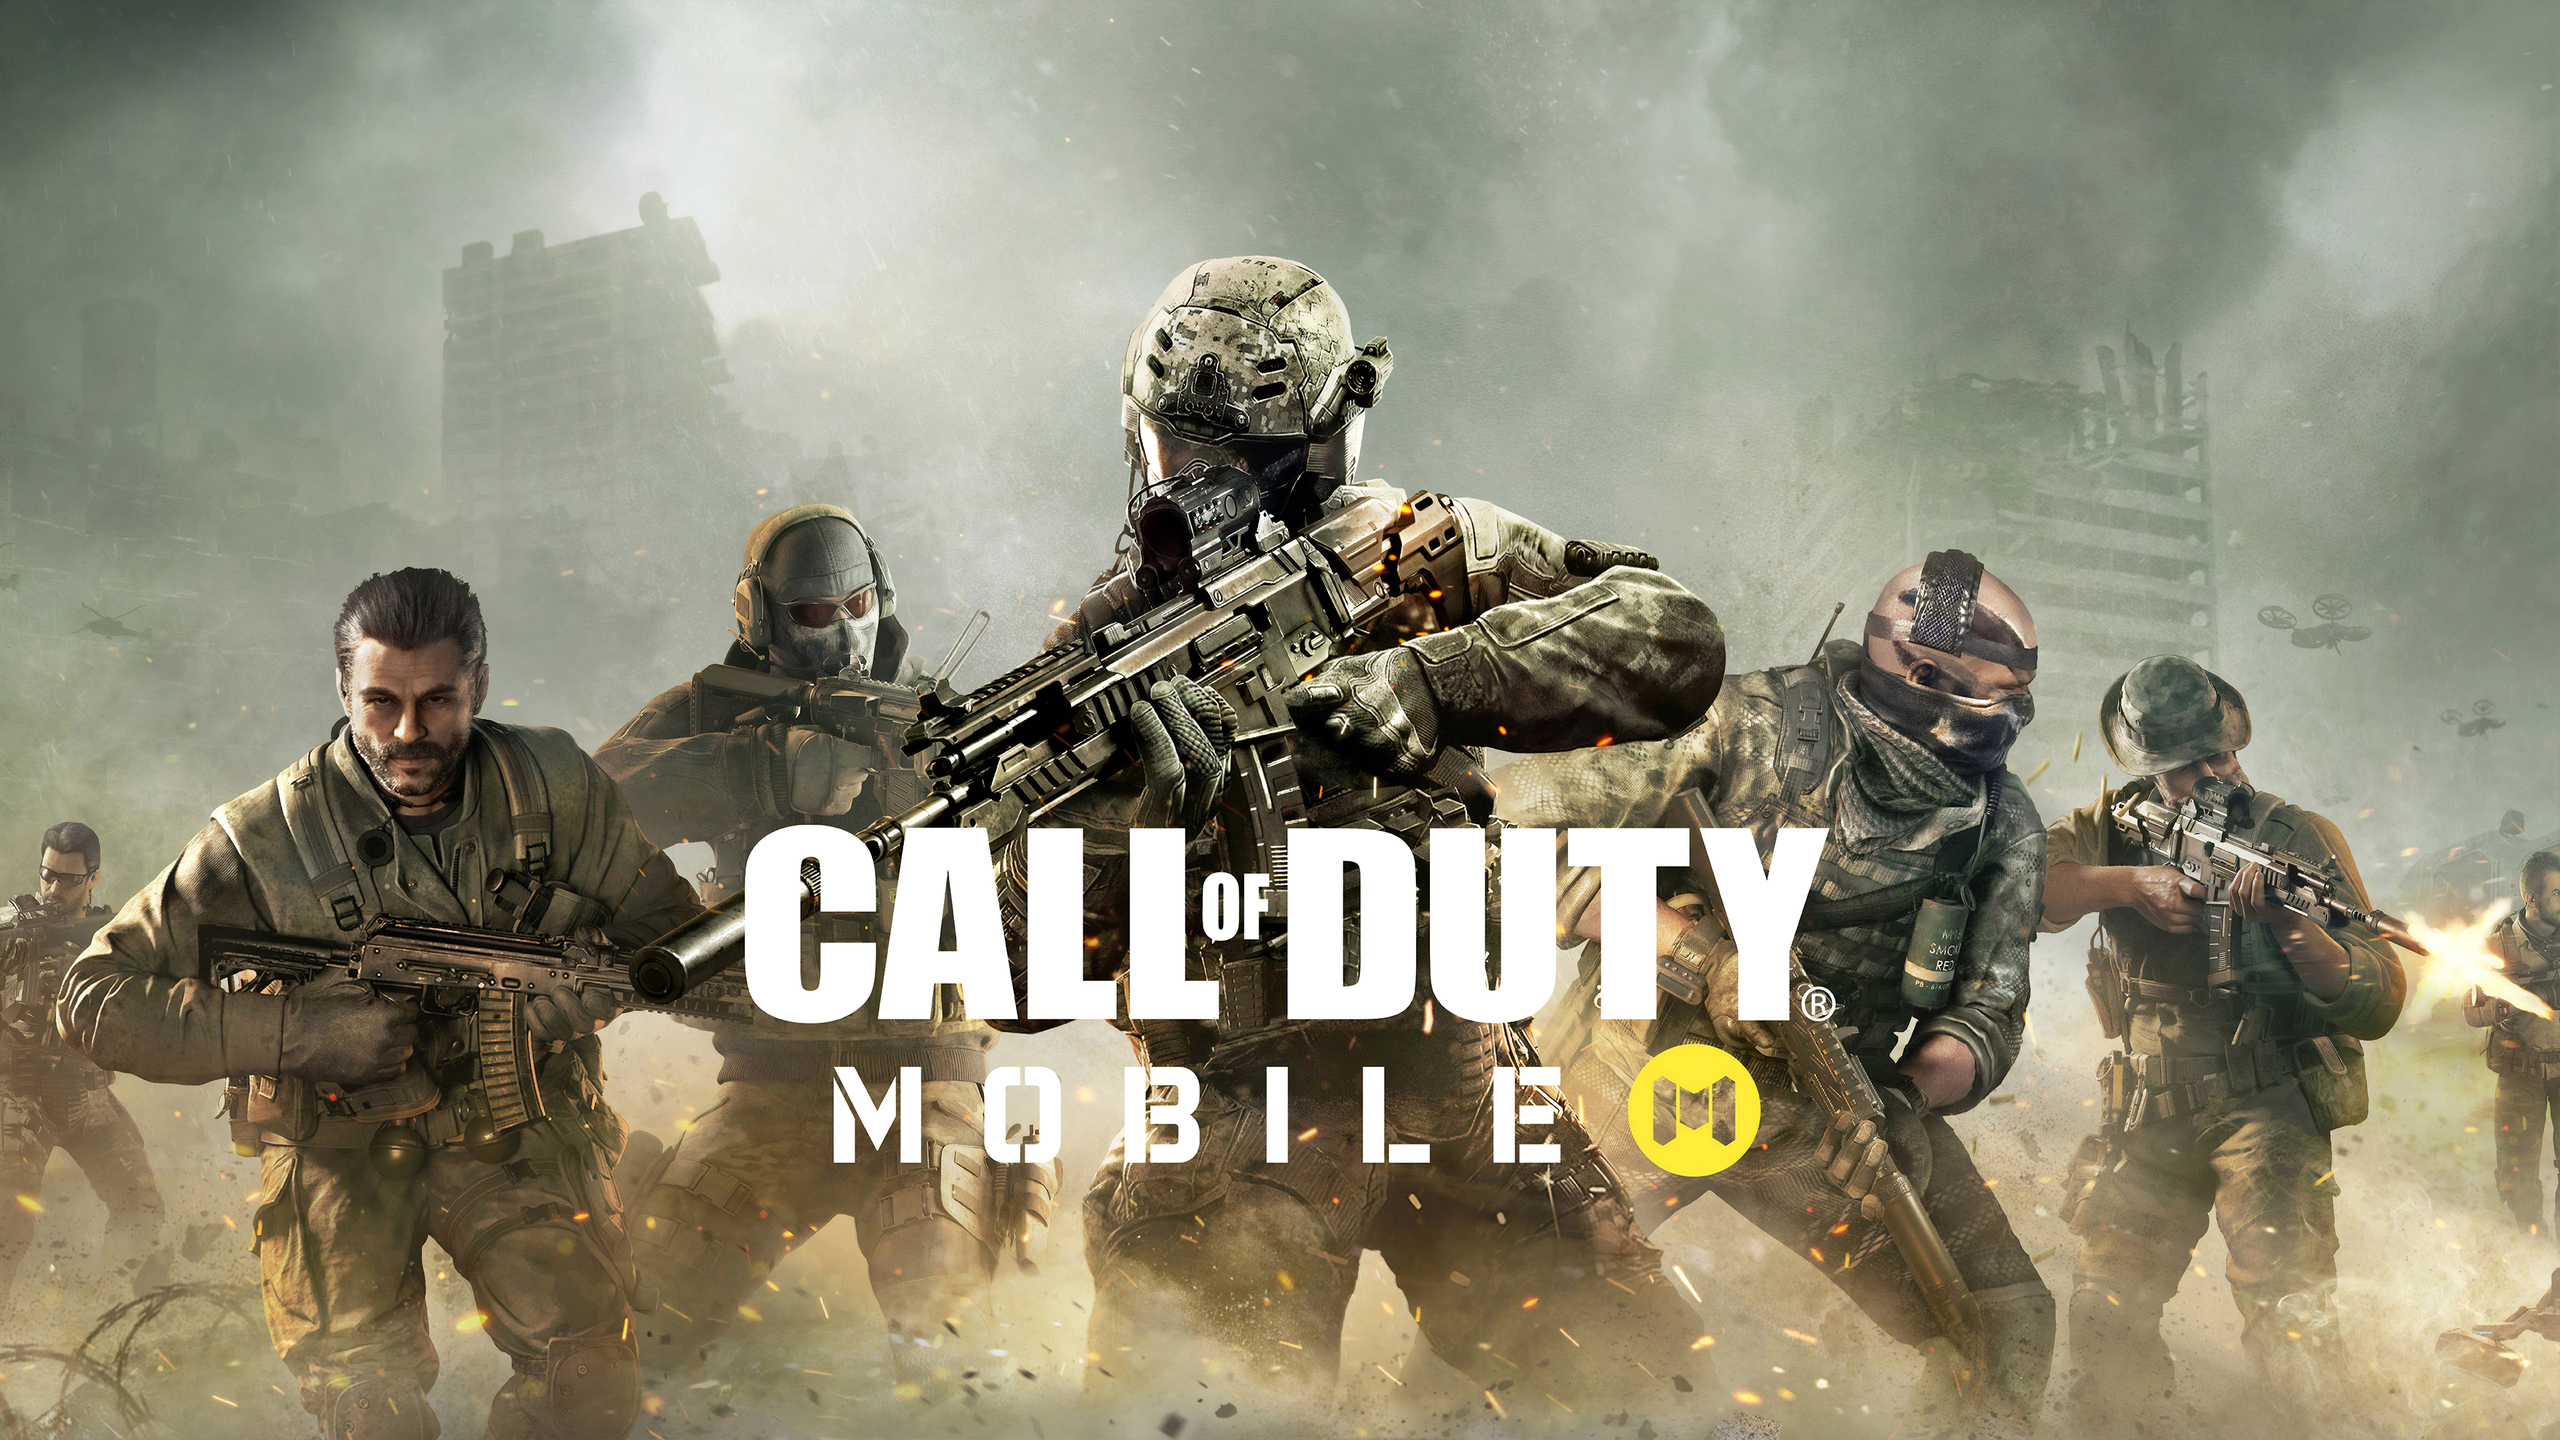 2560x1440 Call Of Duty Mobile 1440p Resolution Hd 4k Wallpapers Images Backgrounds Photos And Pictures